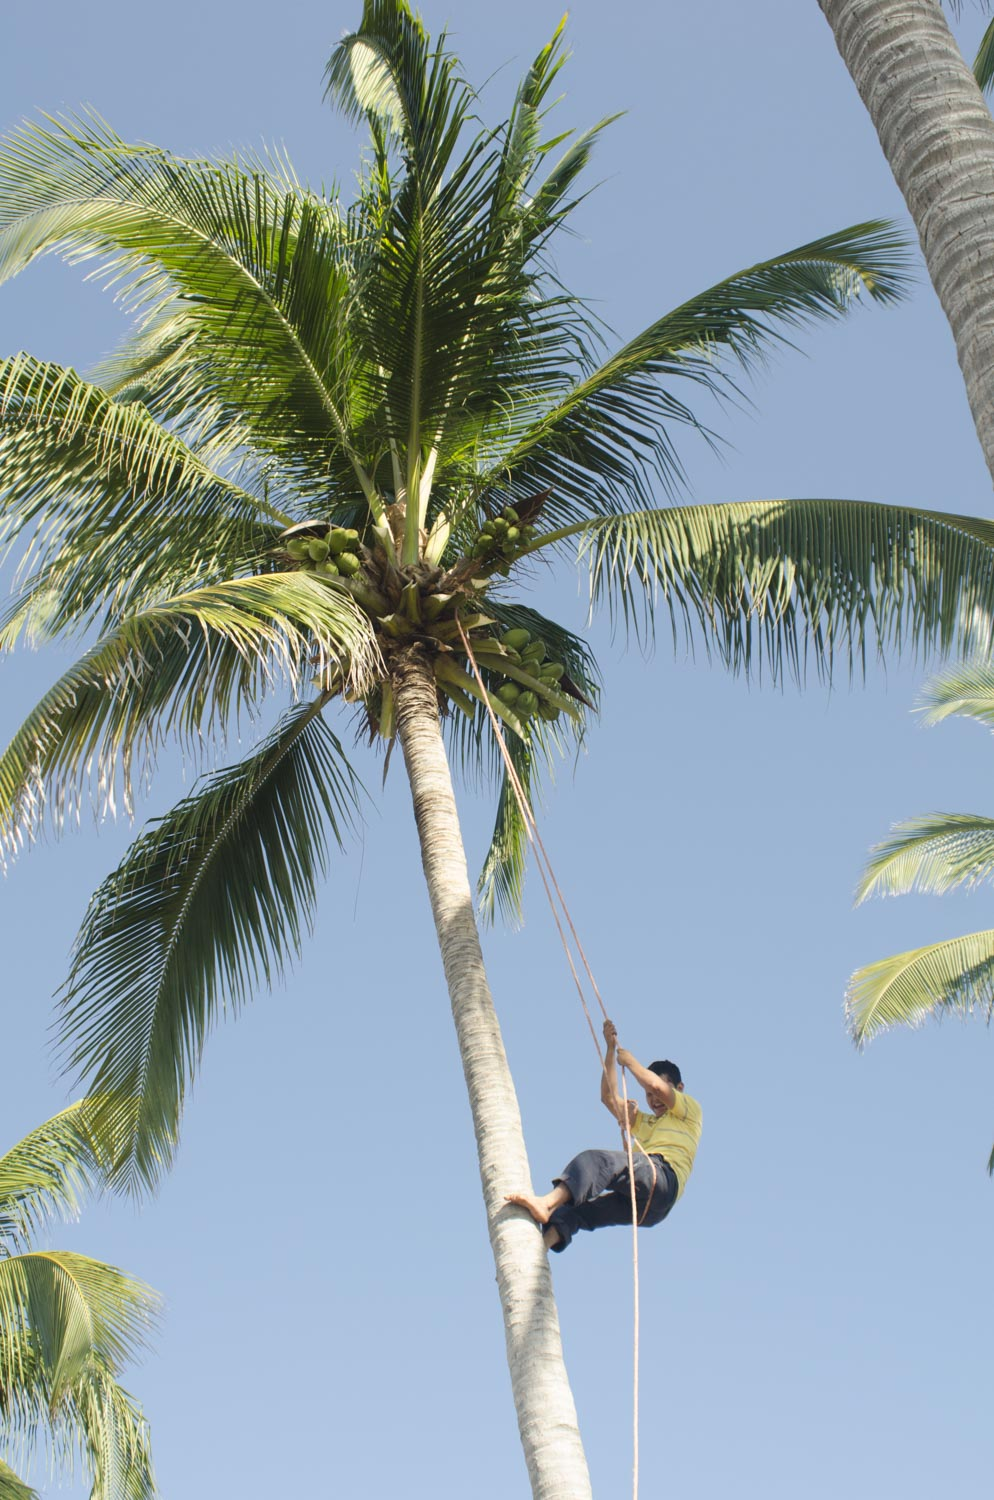 Domingo harvesting coconuts in the property